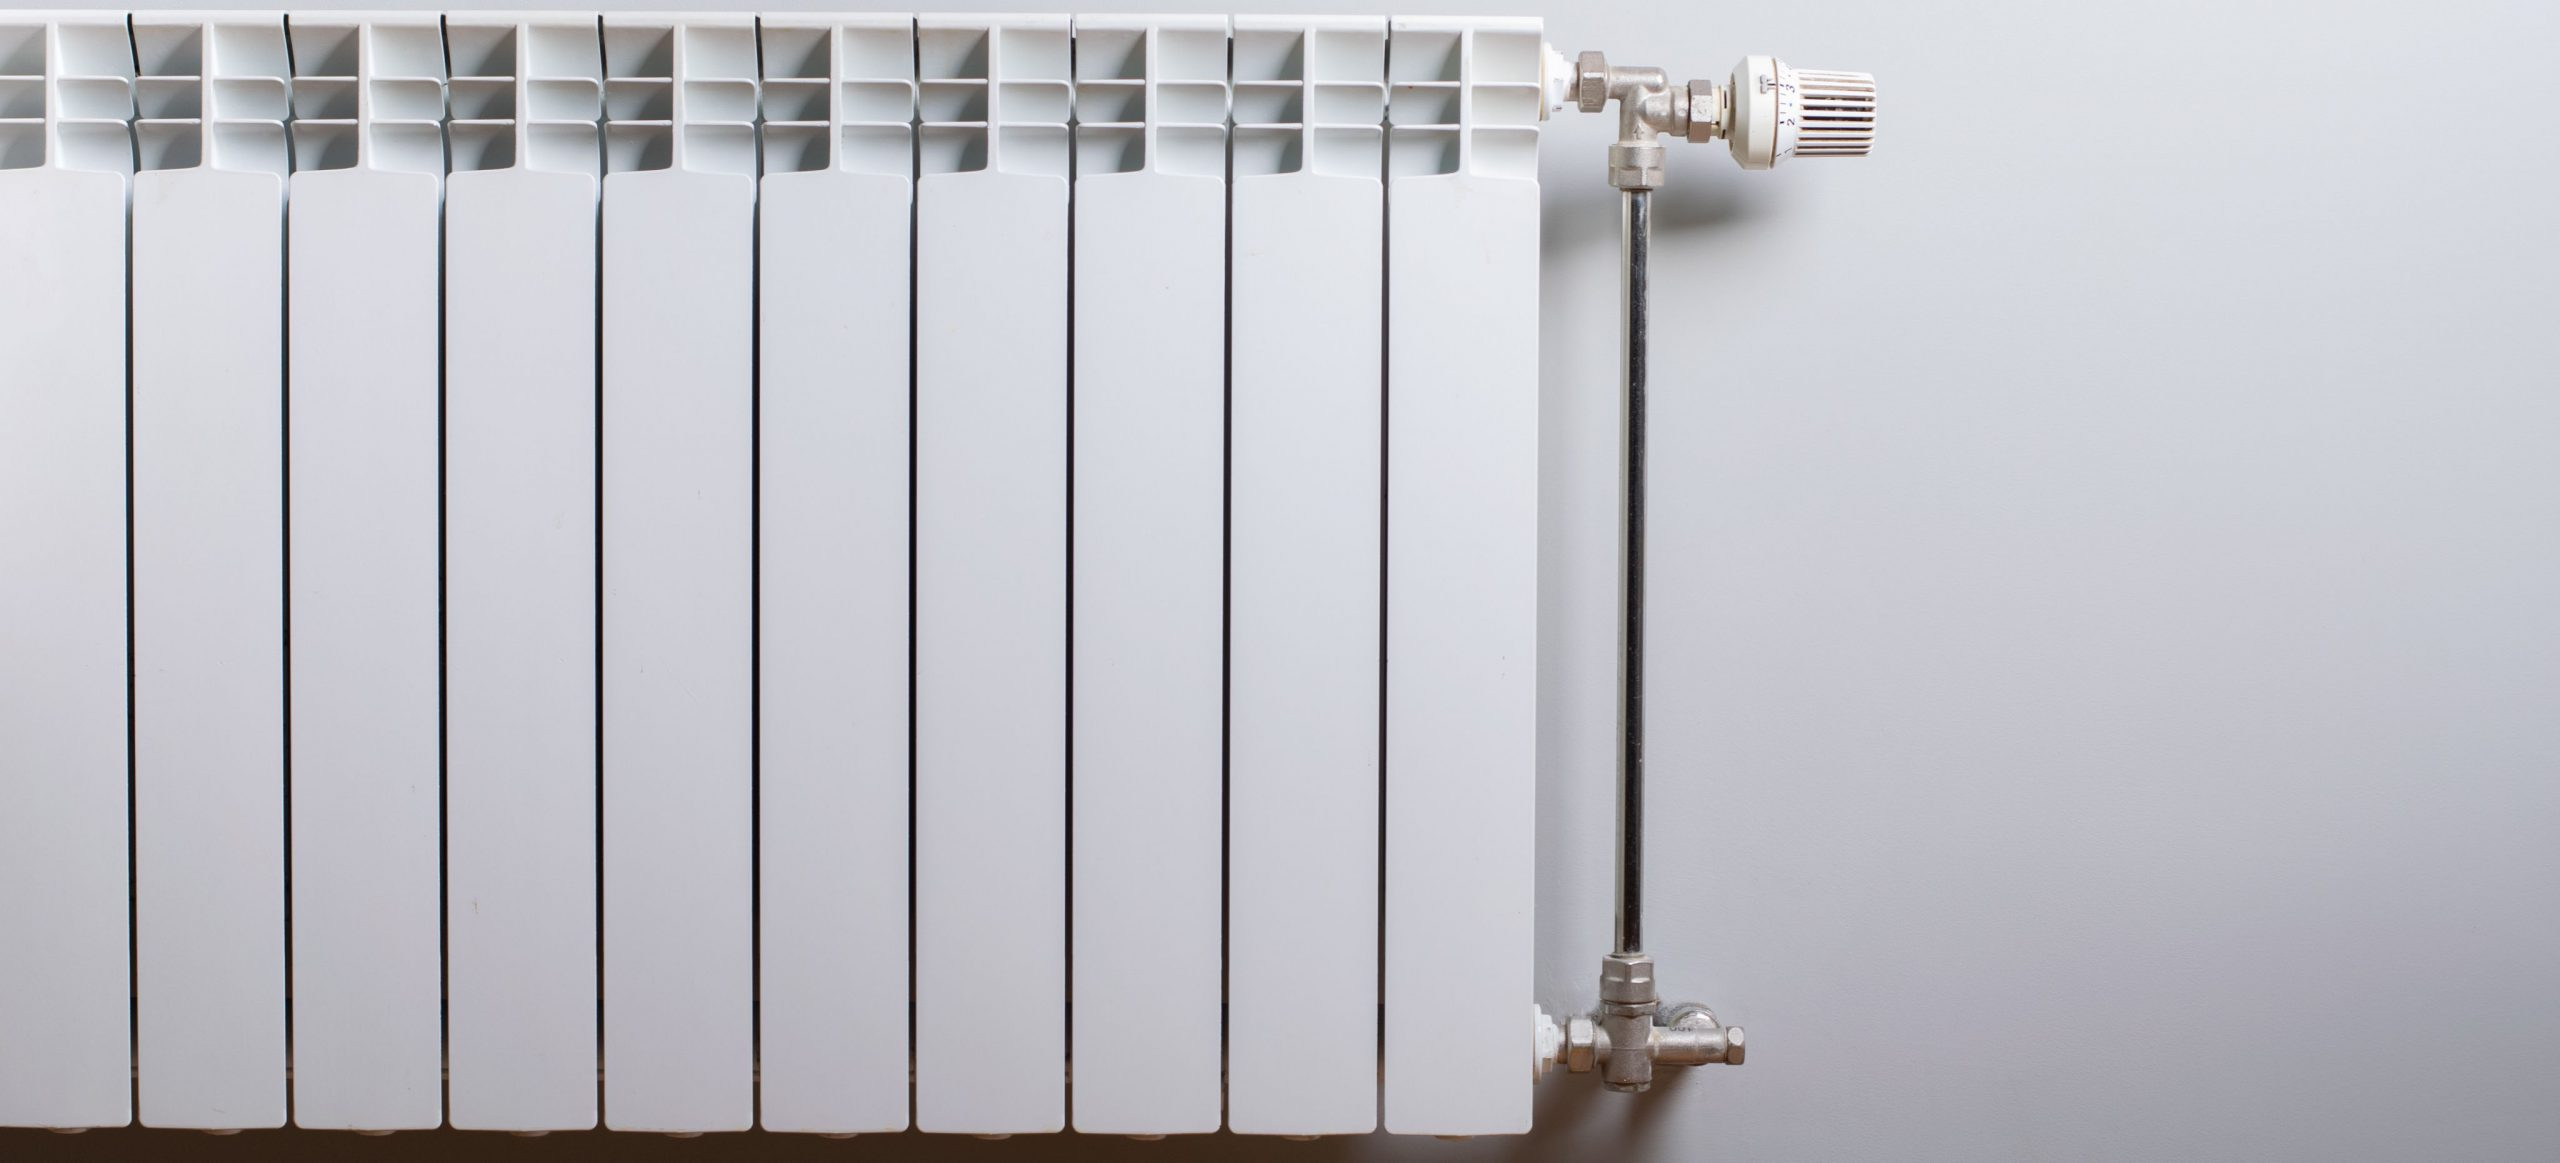 A photo of a cold radiator